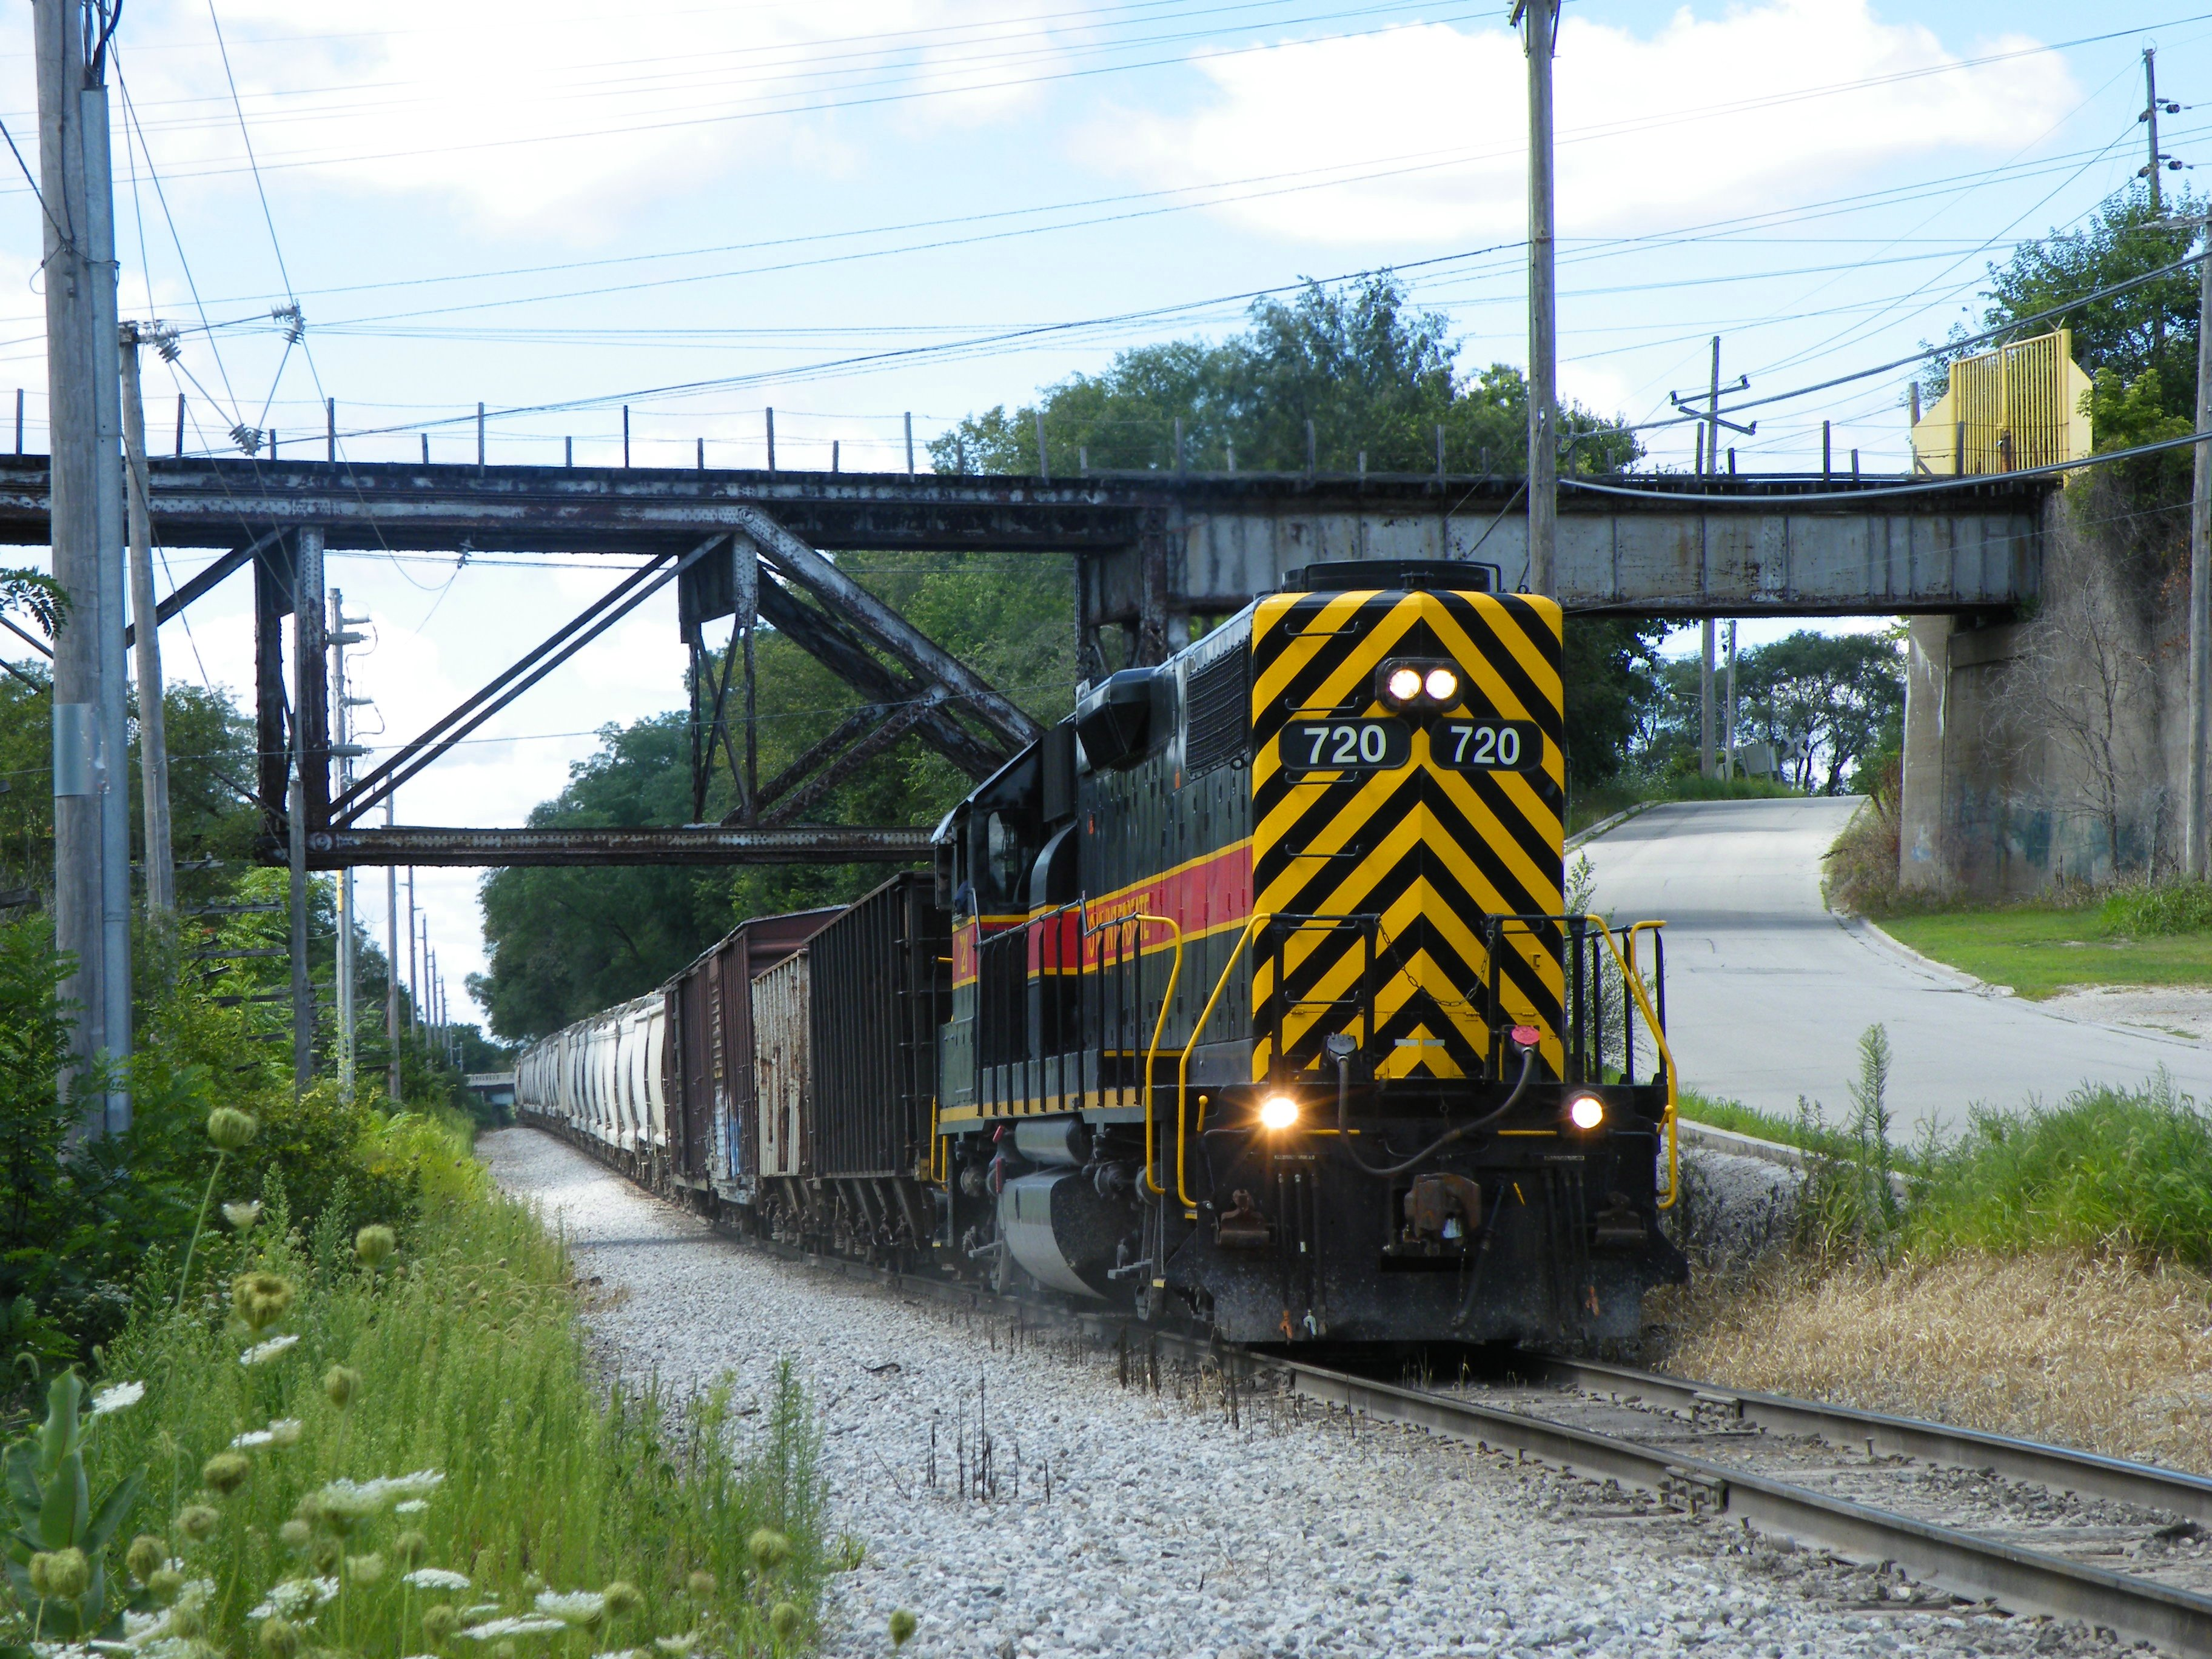 With its train all together and running push-pull style, Iowa 720 east heads toward Utica, passing under the Buzzi spur.